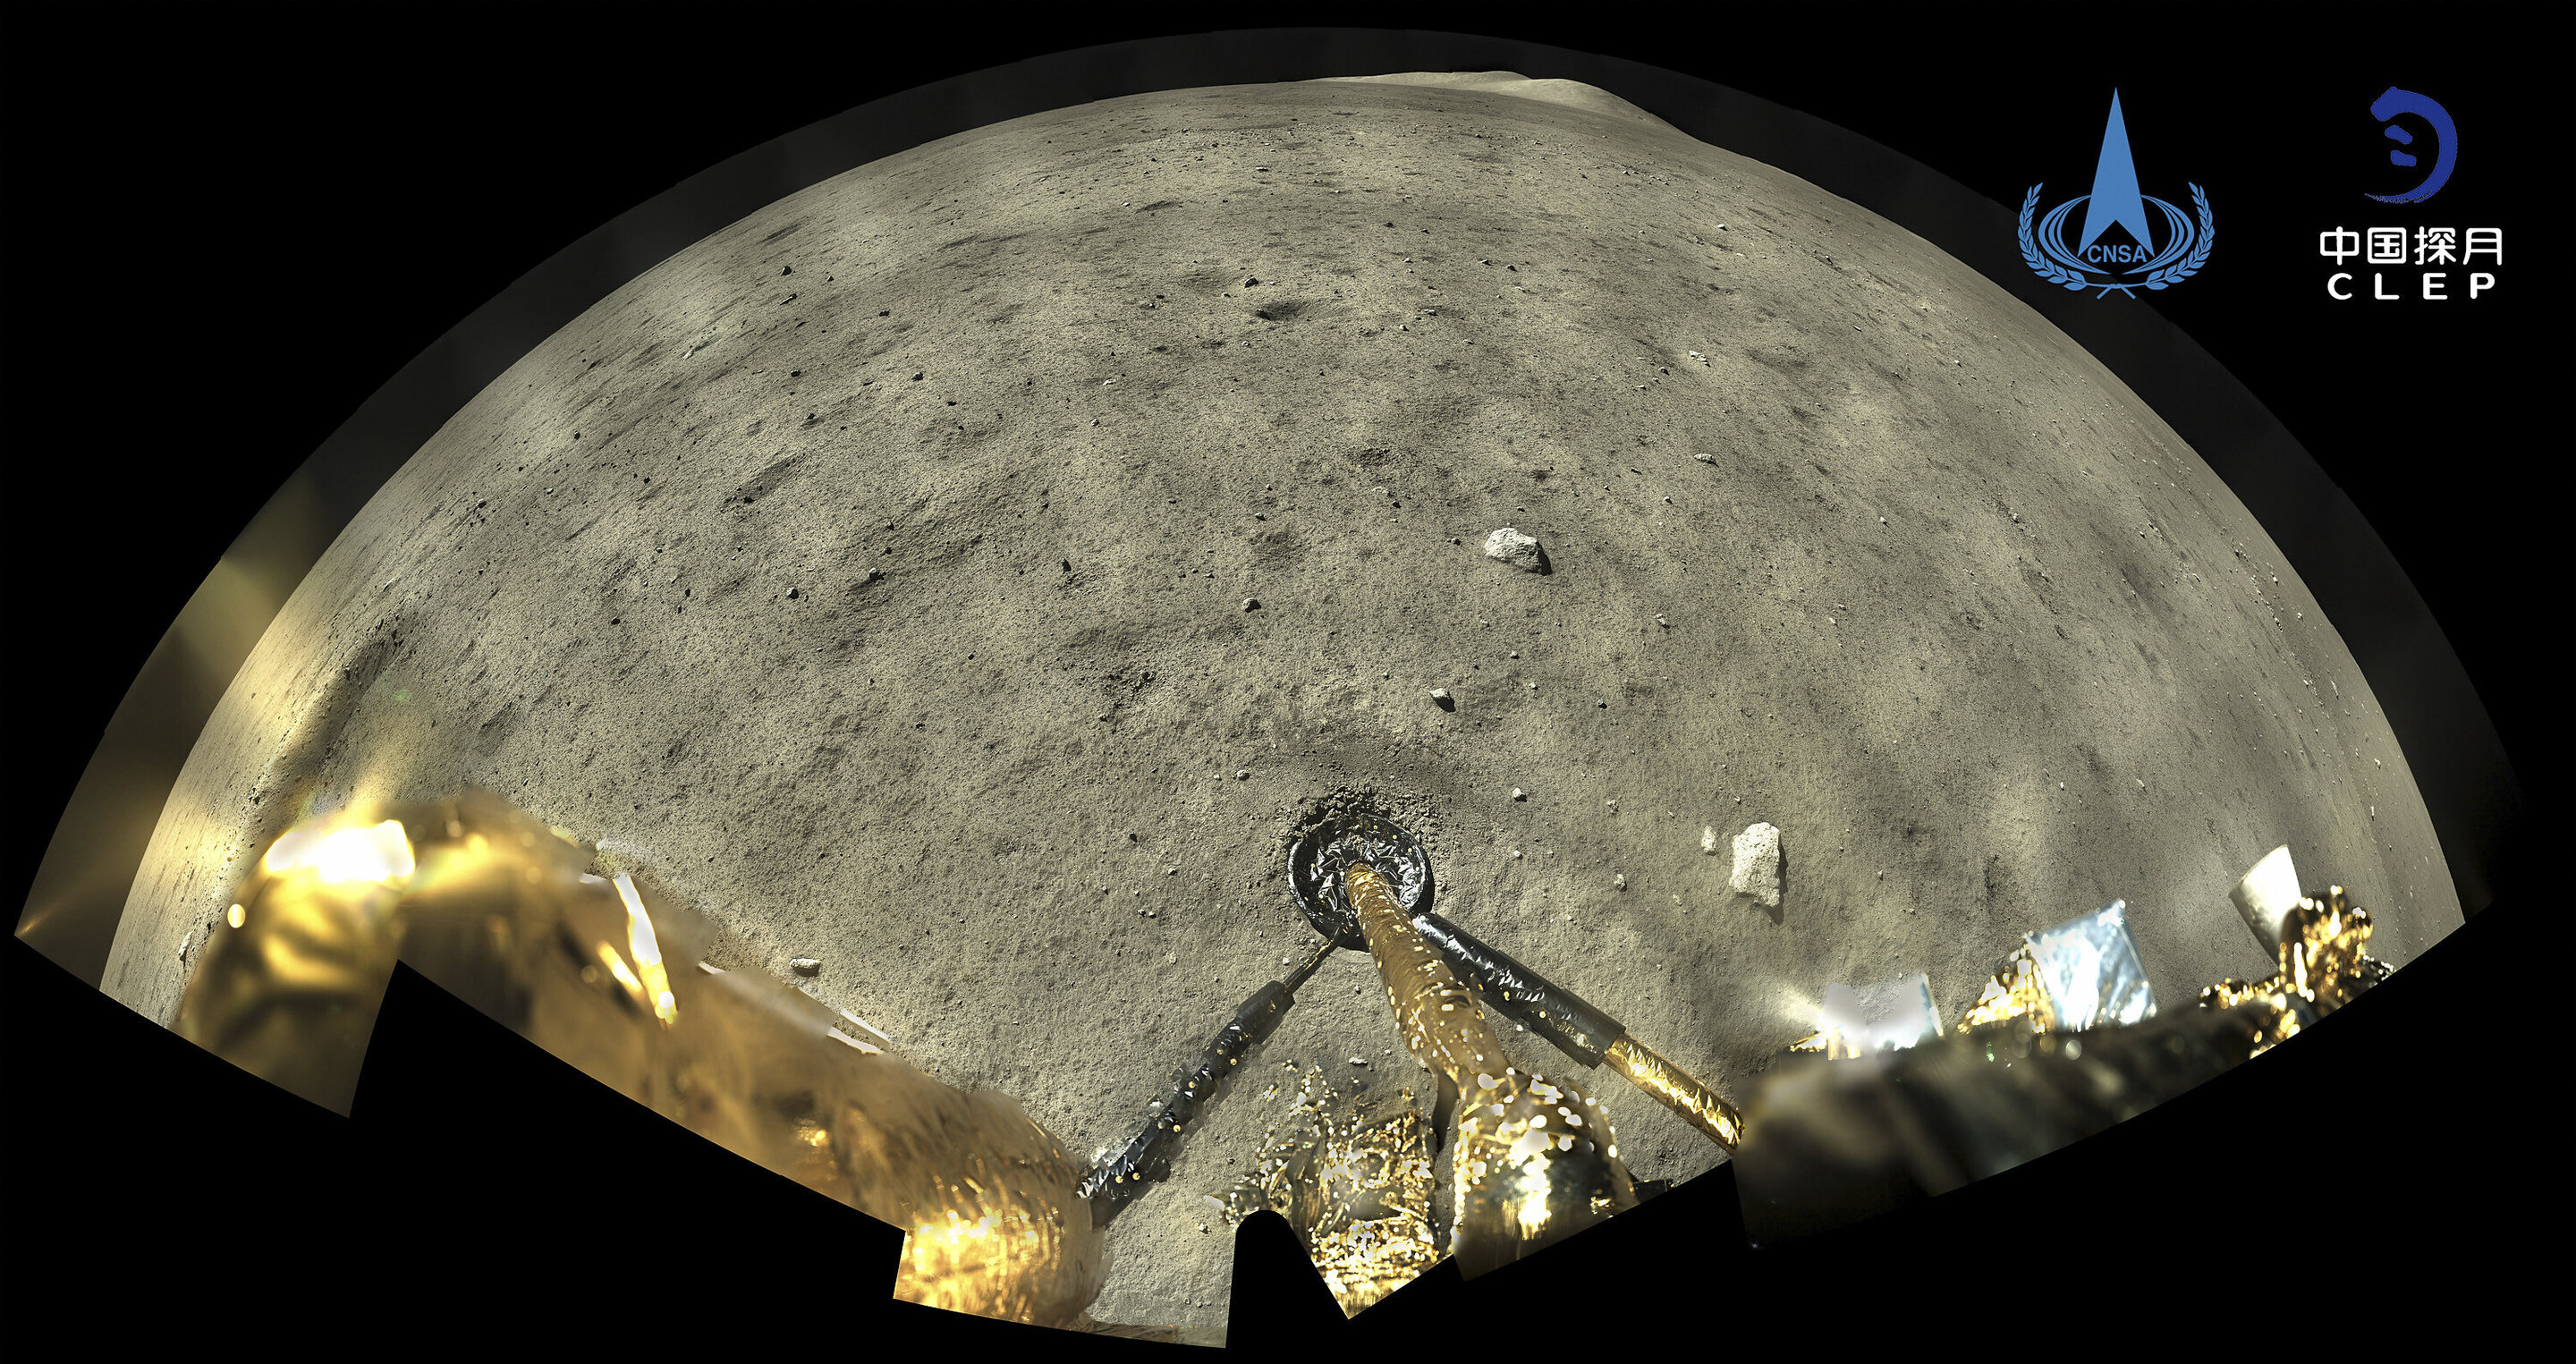 Moon probe preparing to return rock samples to Earth